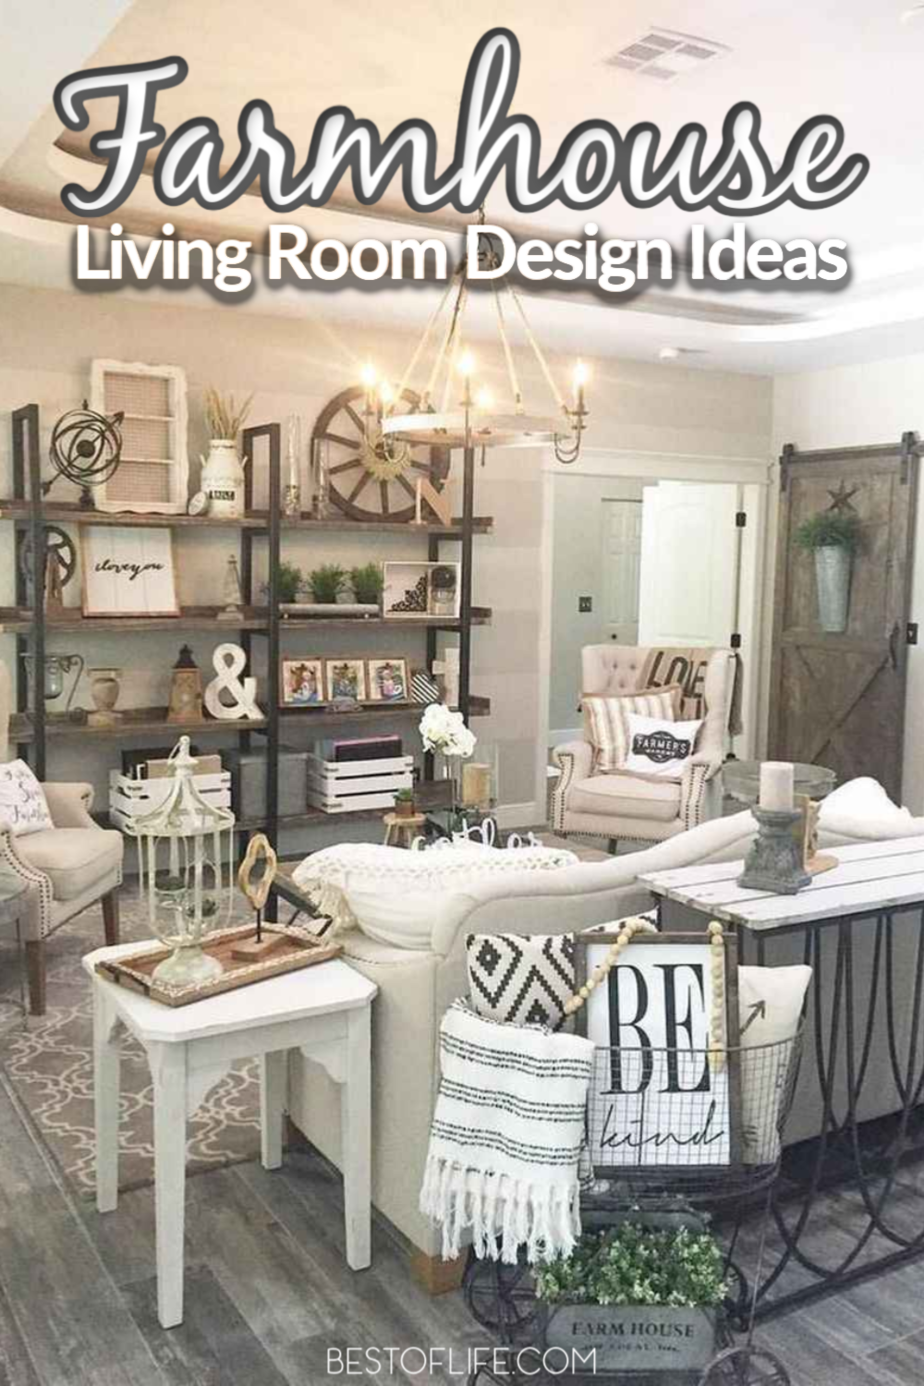 Faux farmhouse living room designs are not only chic living room designs, but they're also easy DIY home designs for a modern look. Home Décor Ideas   DIY Home Designs   Farmhouse Décor Ideas   Farmhouse Designs   Farmhouse Home Décor   DIY Home Décor #decor #home via @thebestoflife